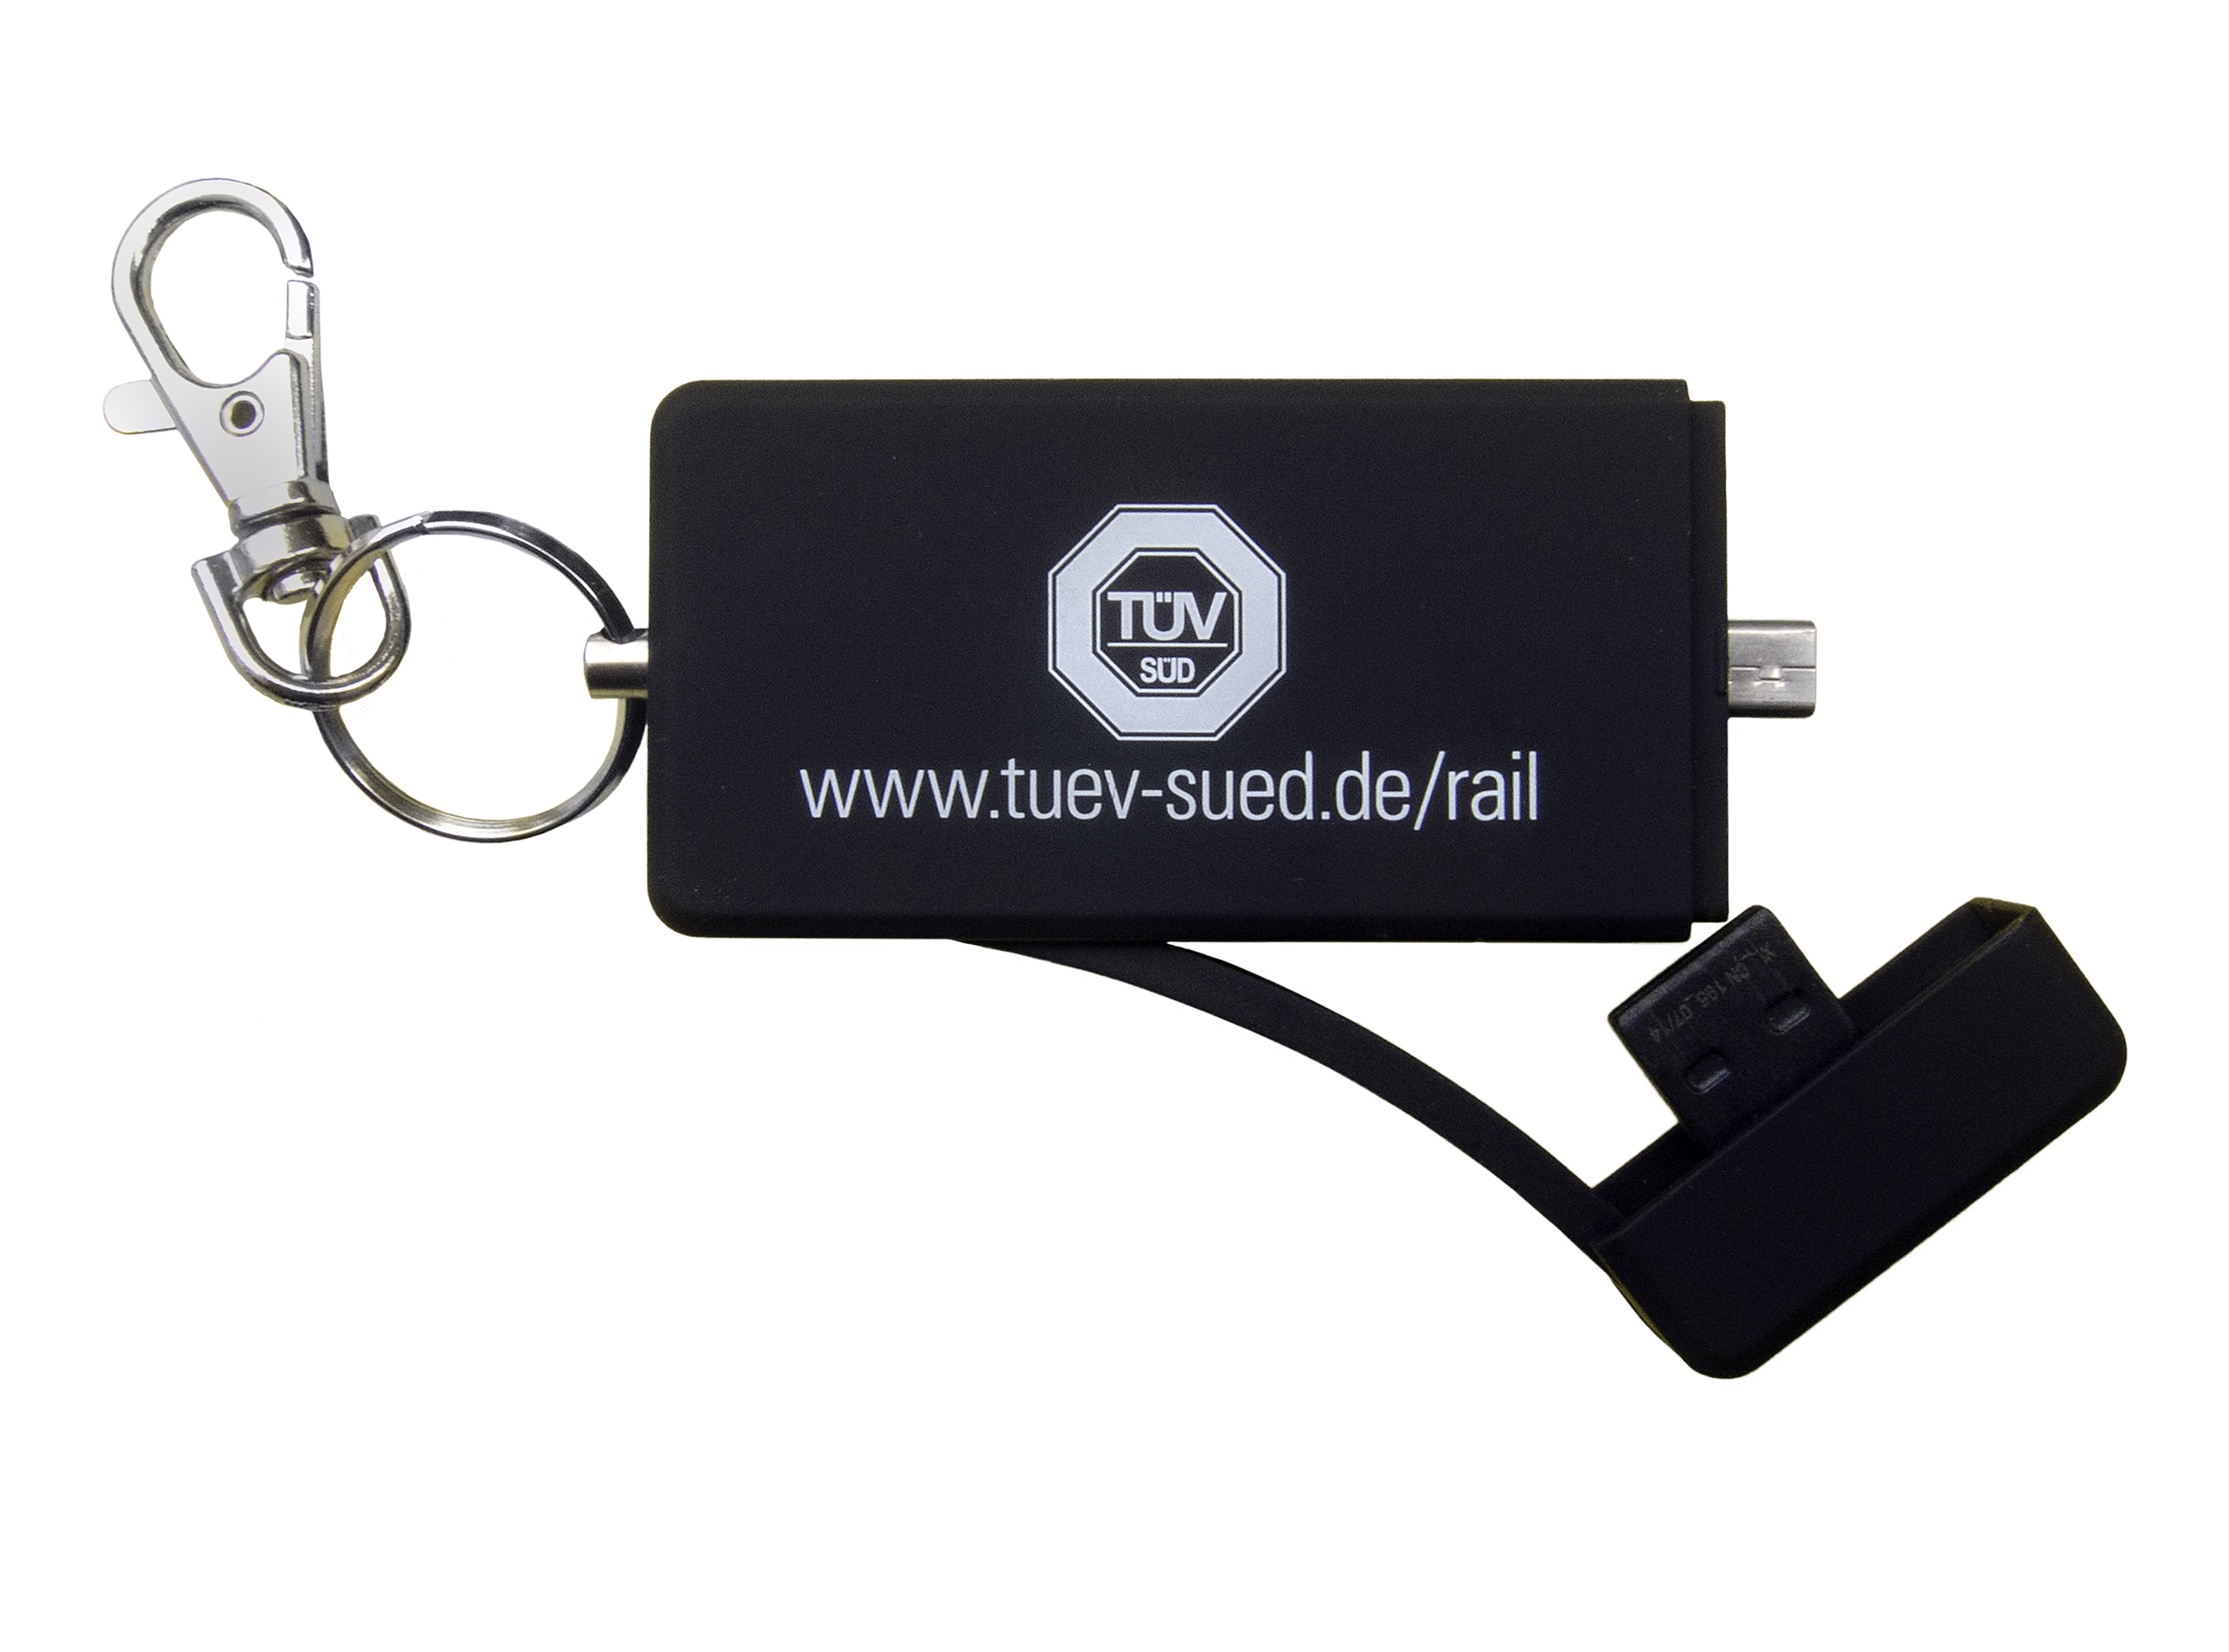 TÜV SÜD Rail Key-Charger